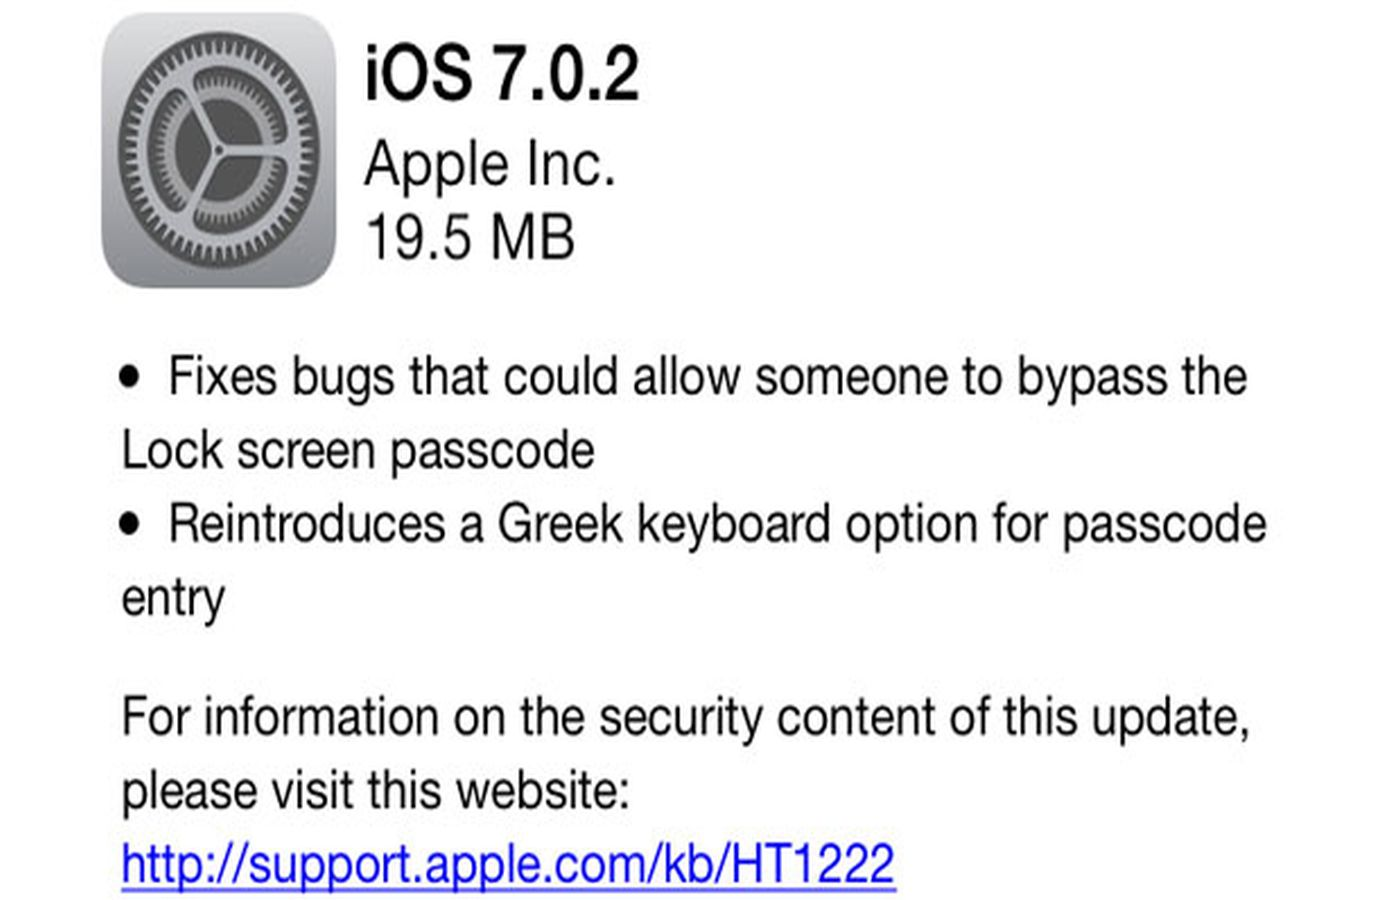 Apple Fixes Lockscreen Bypass Bug With iOS 7.0.2